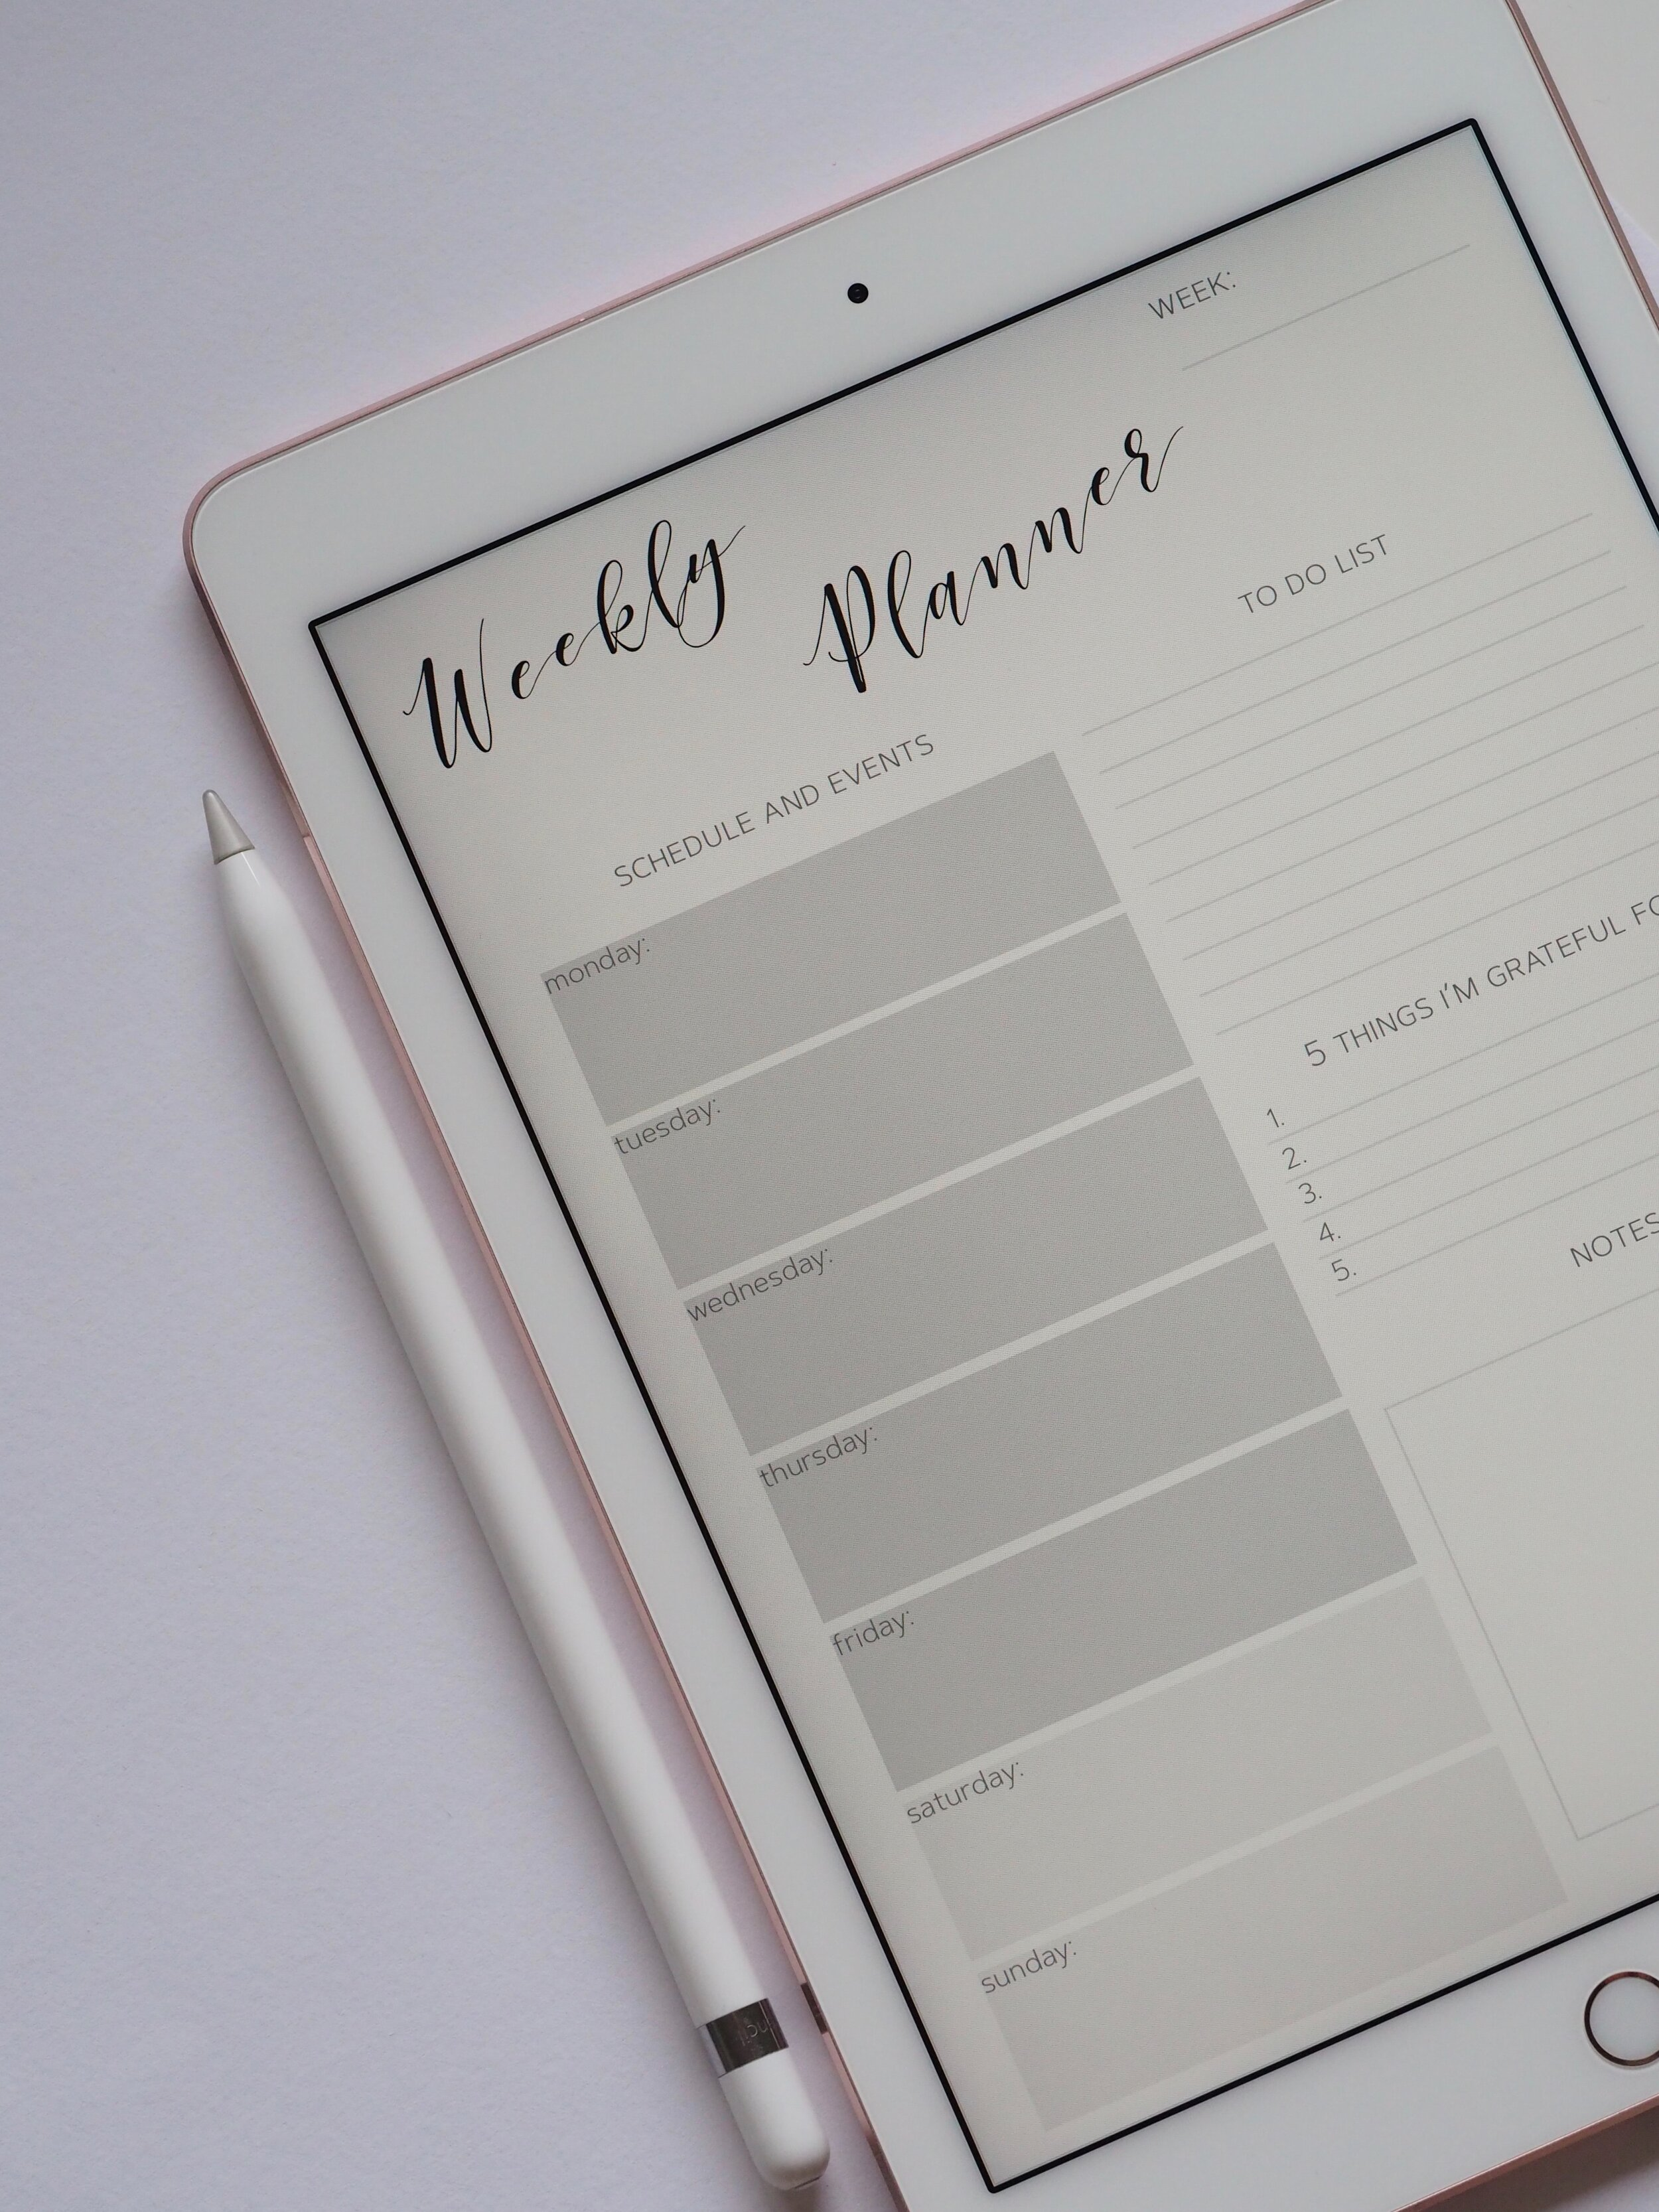 Ali needs the tasks and schedule all organized into a calendar and task manager.